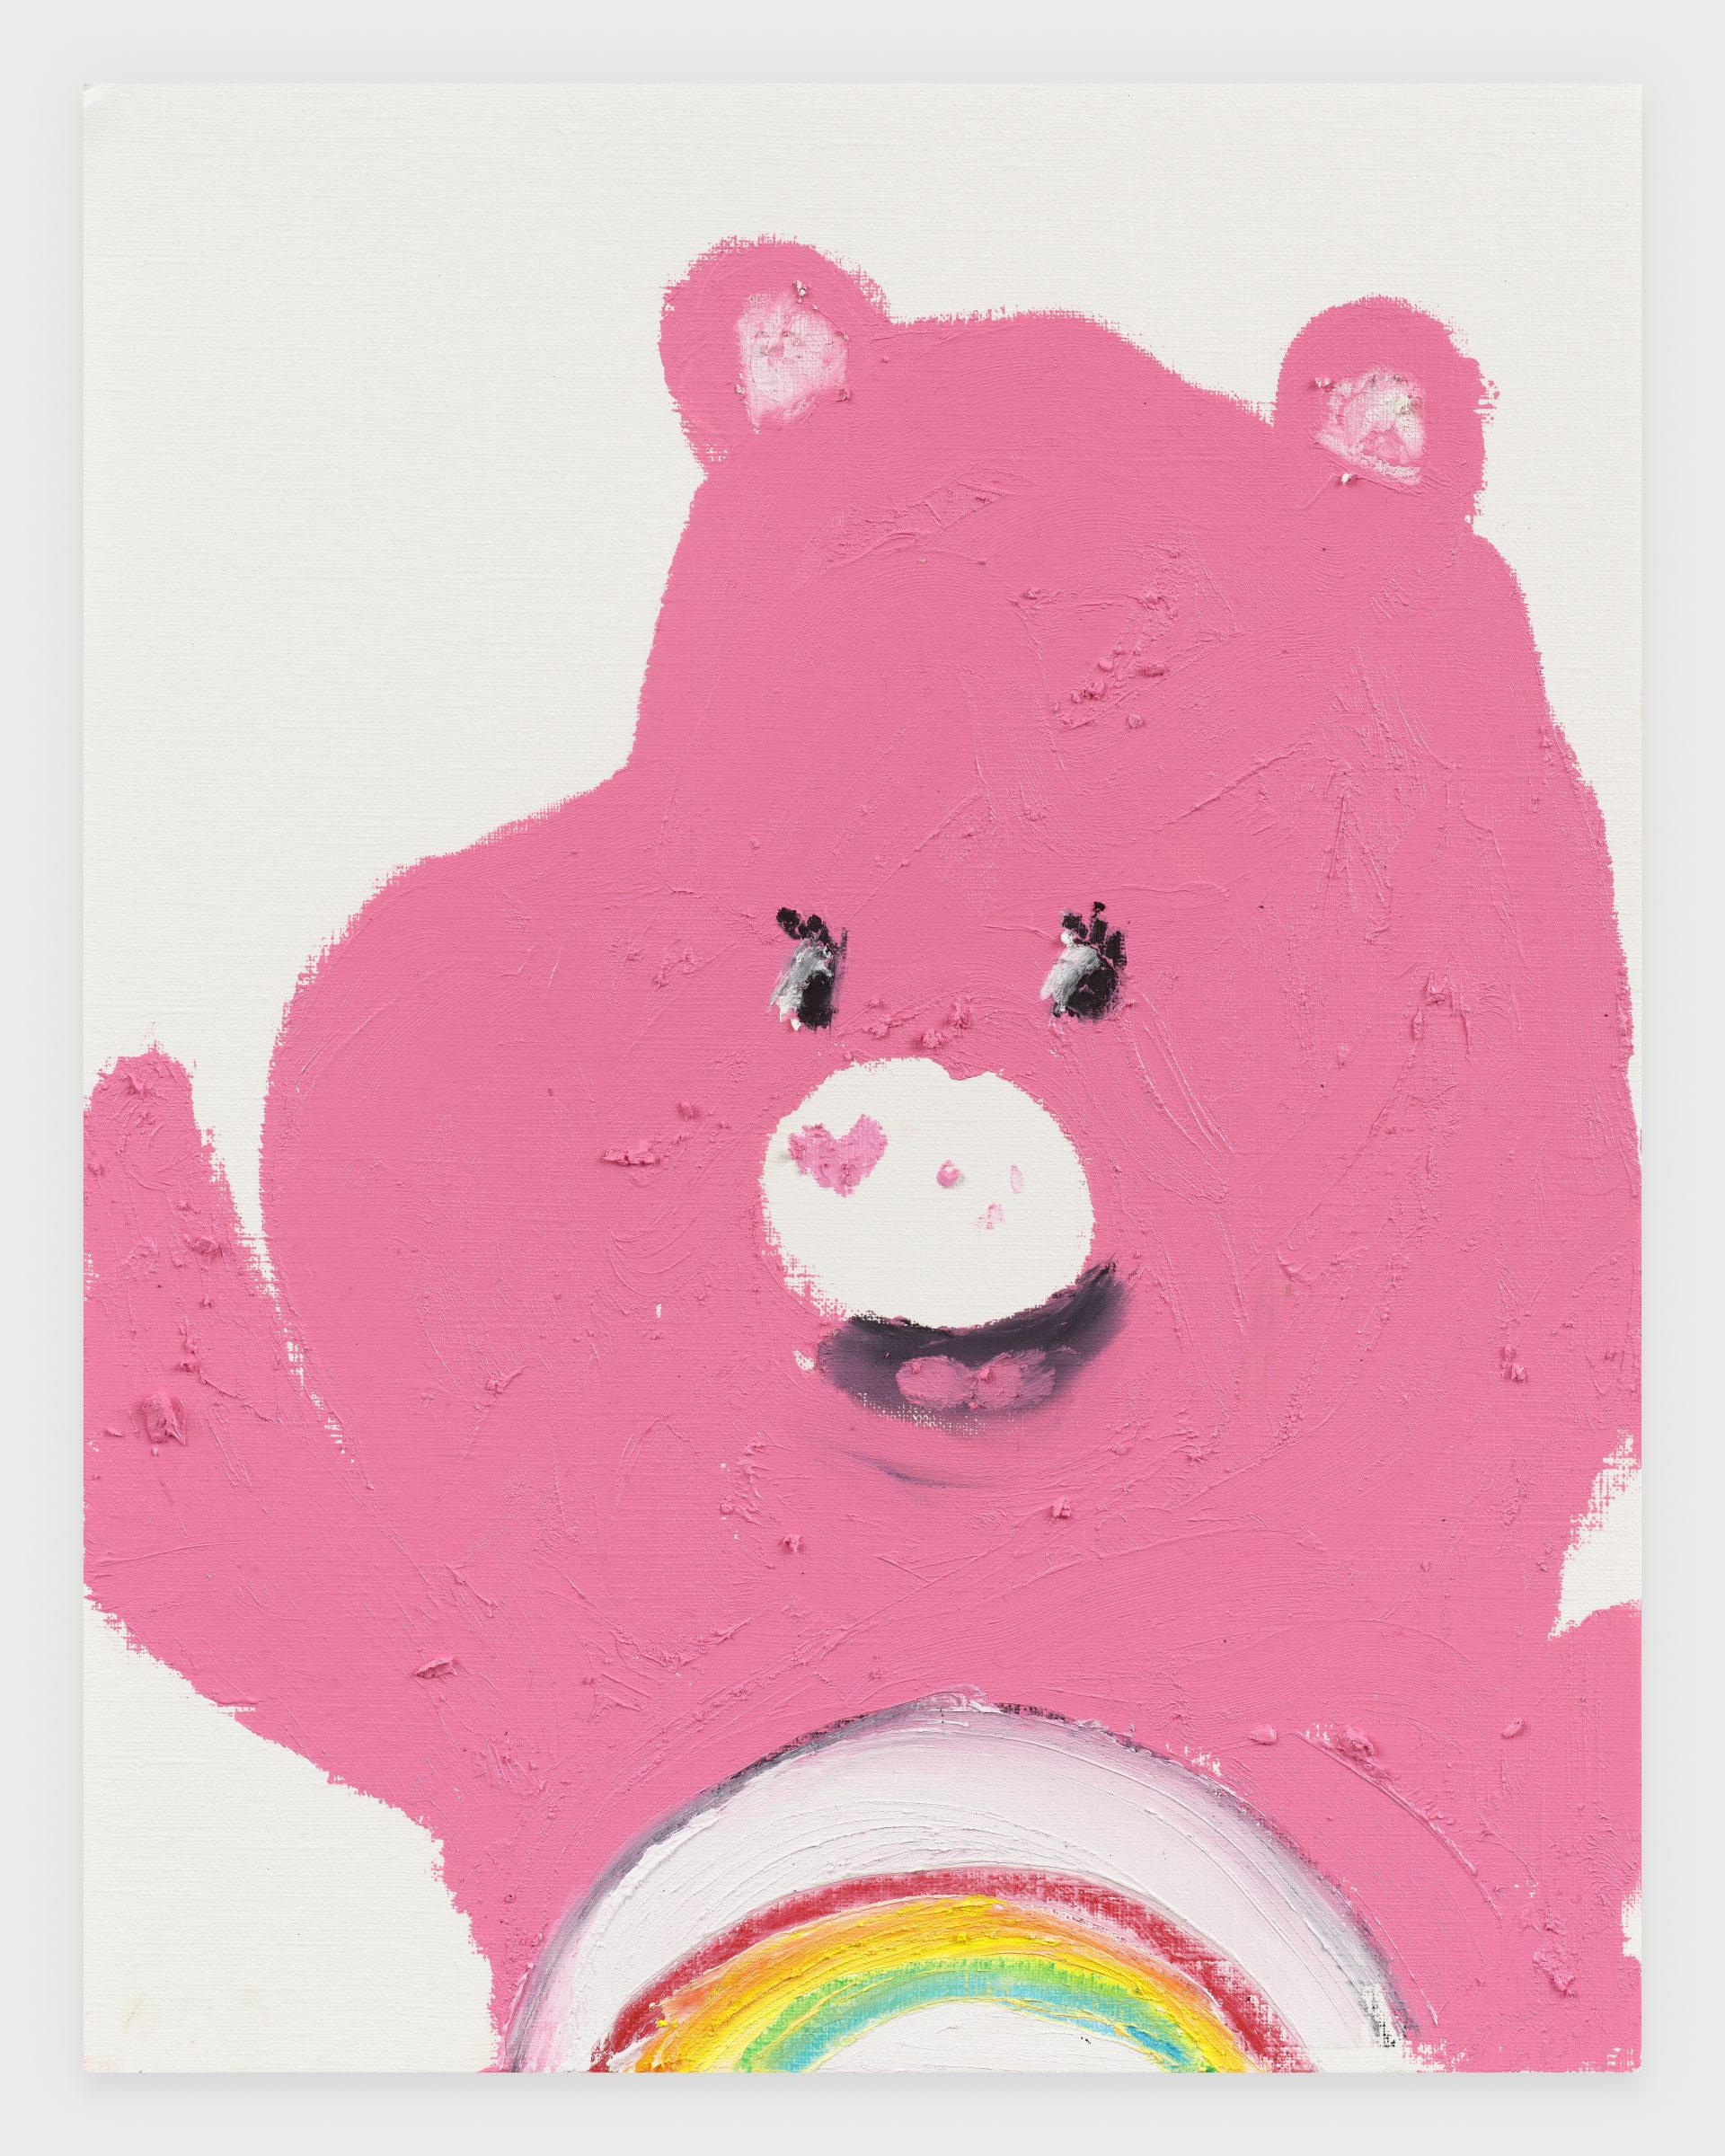 Care Bear (Cheer Bear), 2020, Oil stick on archival paper, 11 x 14 inches